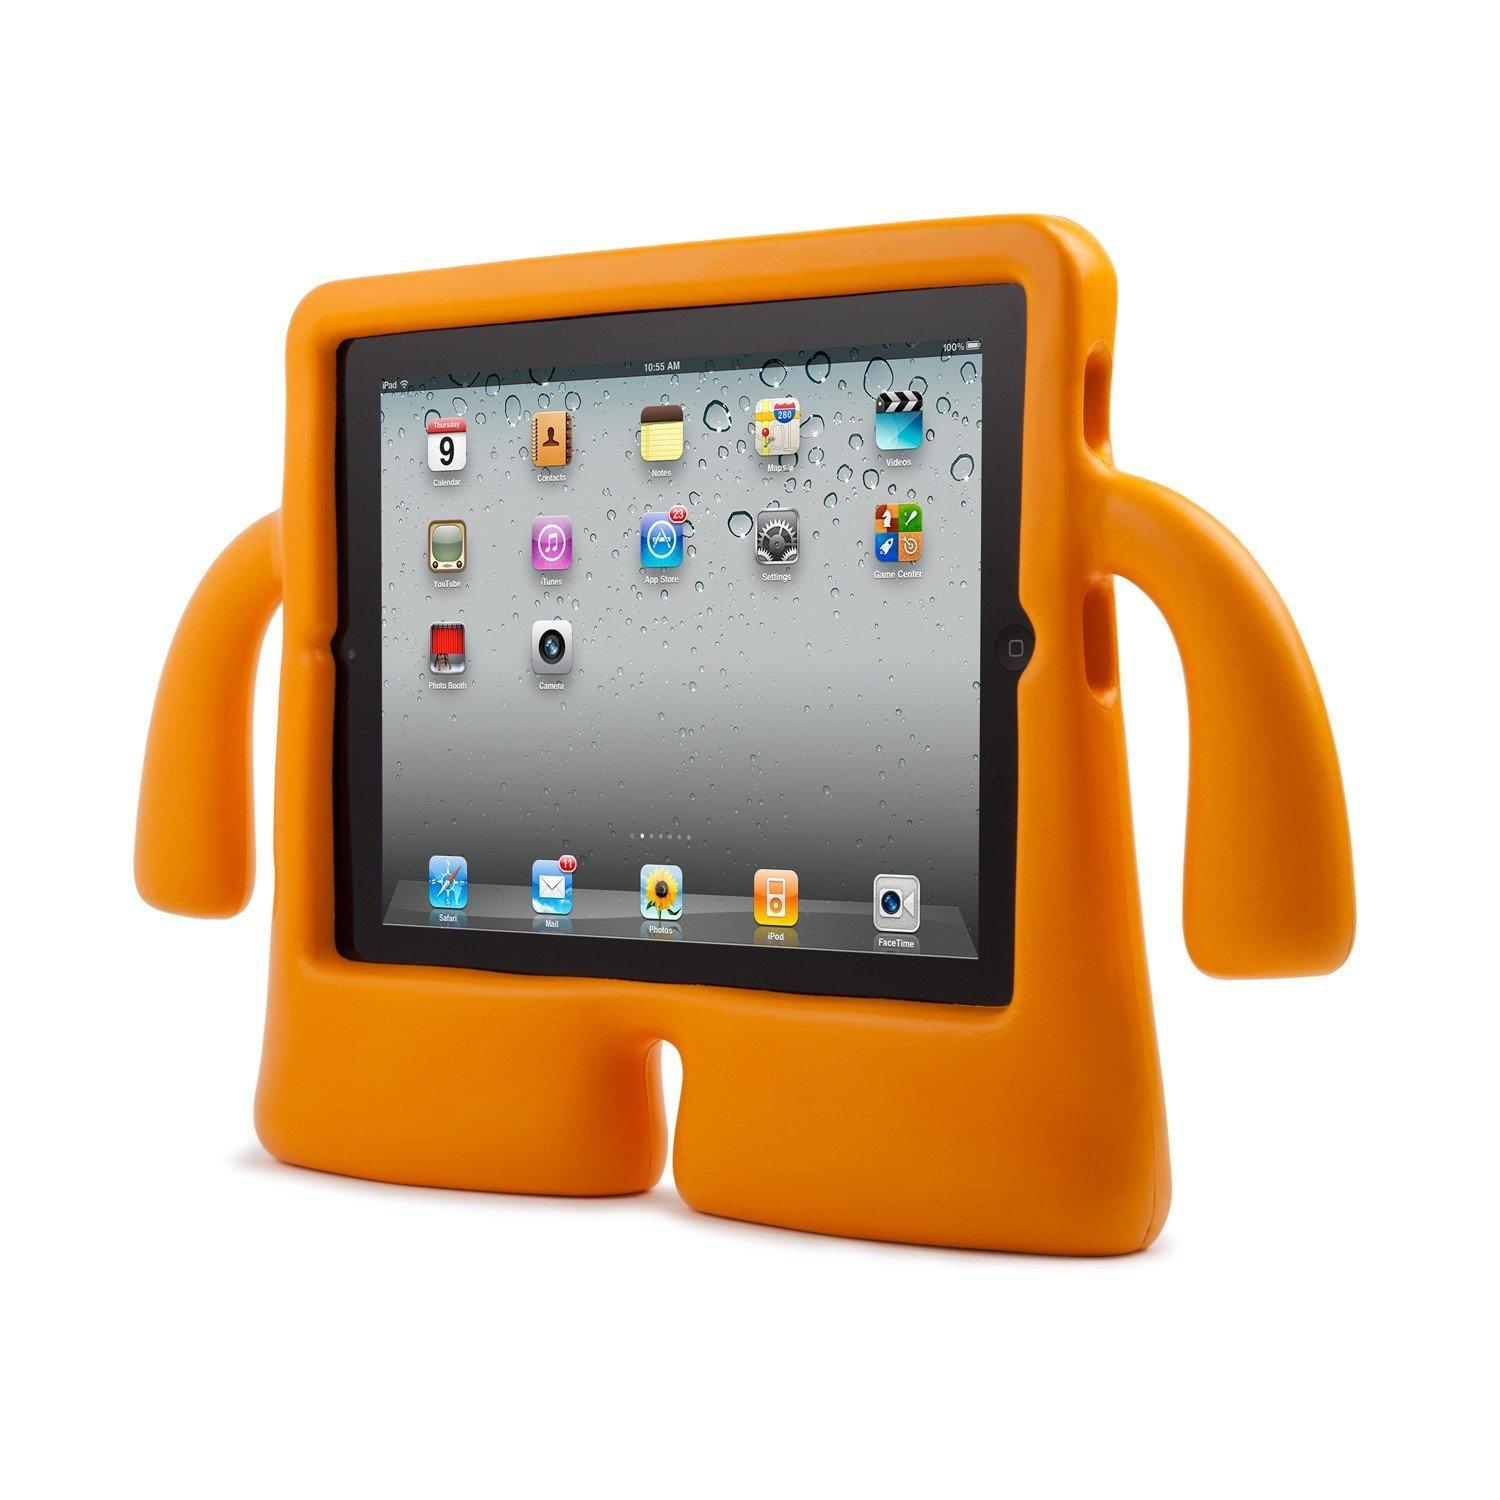 Amazon.com: Speck Products iPad 2 iGuy - Mango (SPK-A0505): Electronics